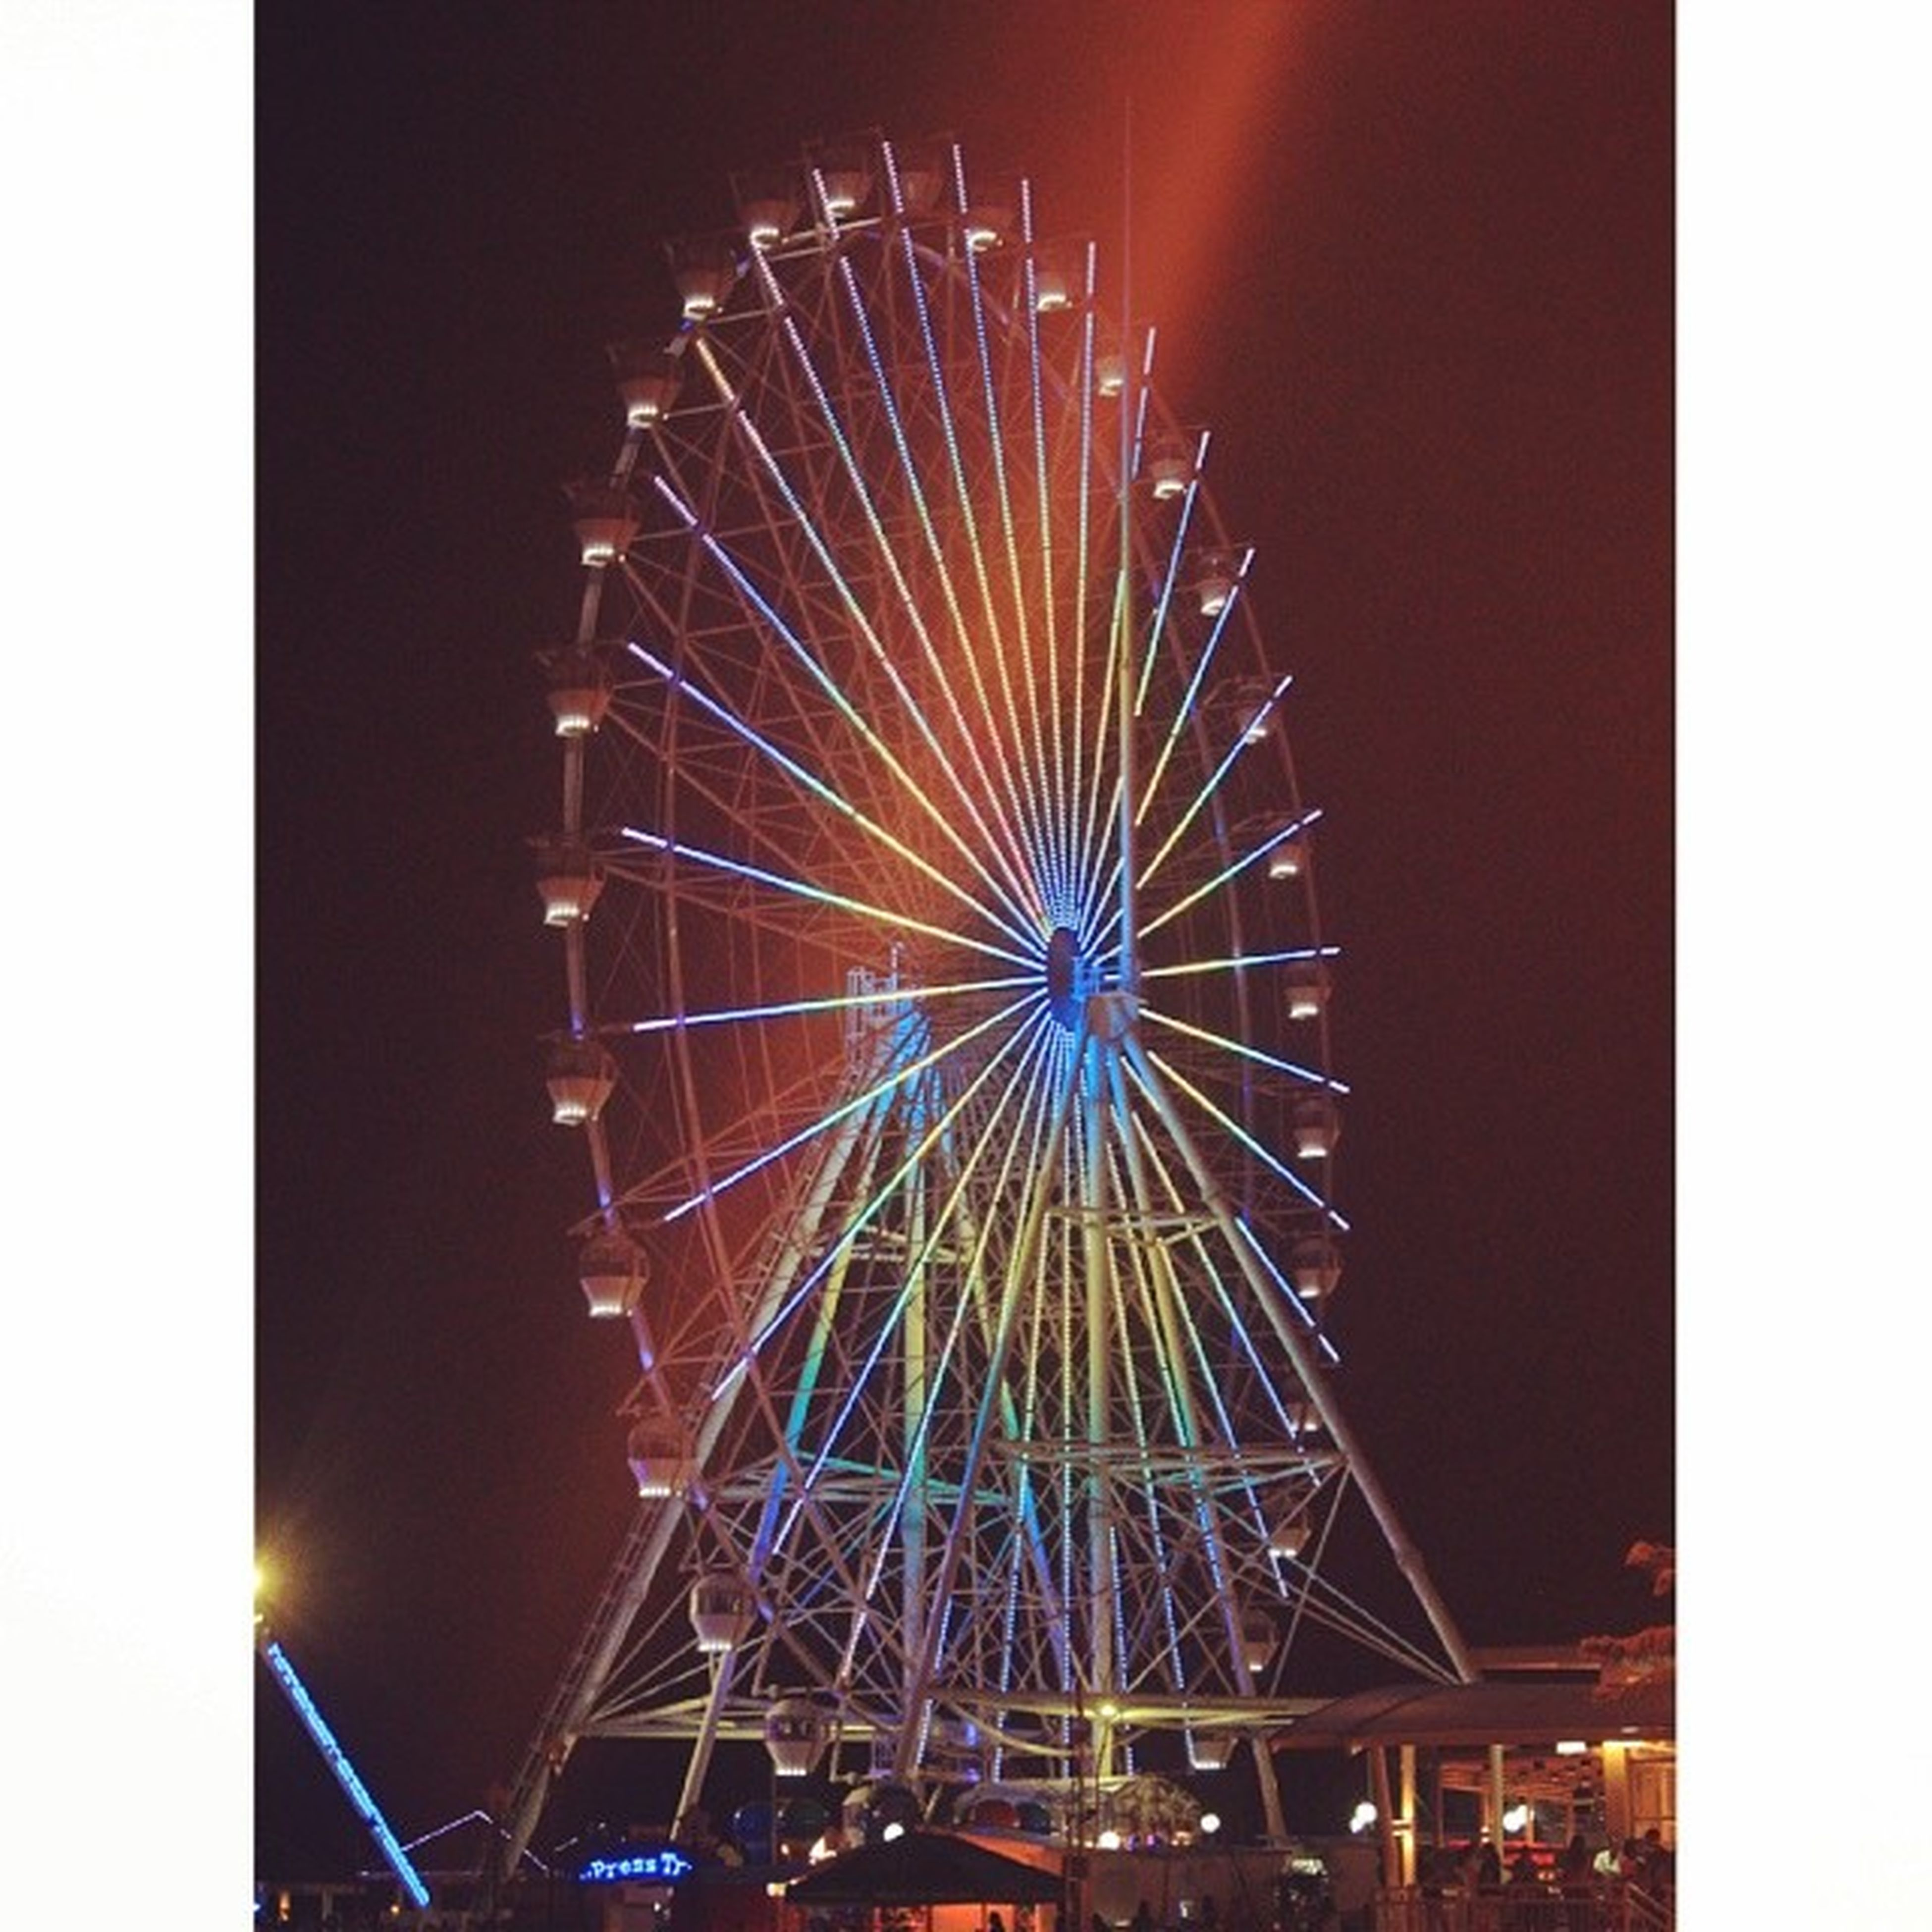 arts culture and entertainment, illuminated, night, ferris wheel, amusement park, amusement park ride, low angle view, sky, firework display, built structure, motion, multi colored, architecture, firework - man made object, glowing, exploding, long exposure, celebration, clear sky, transfer print